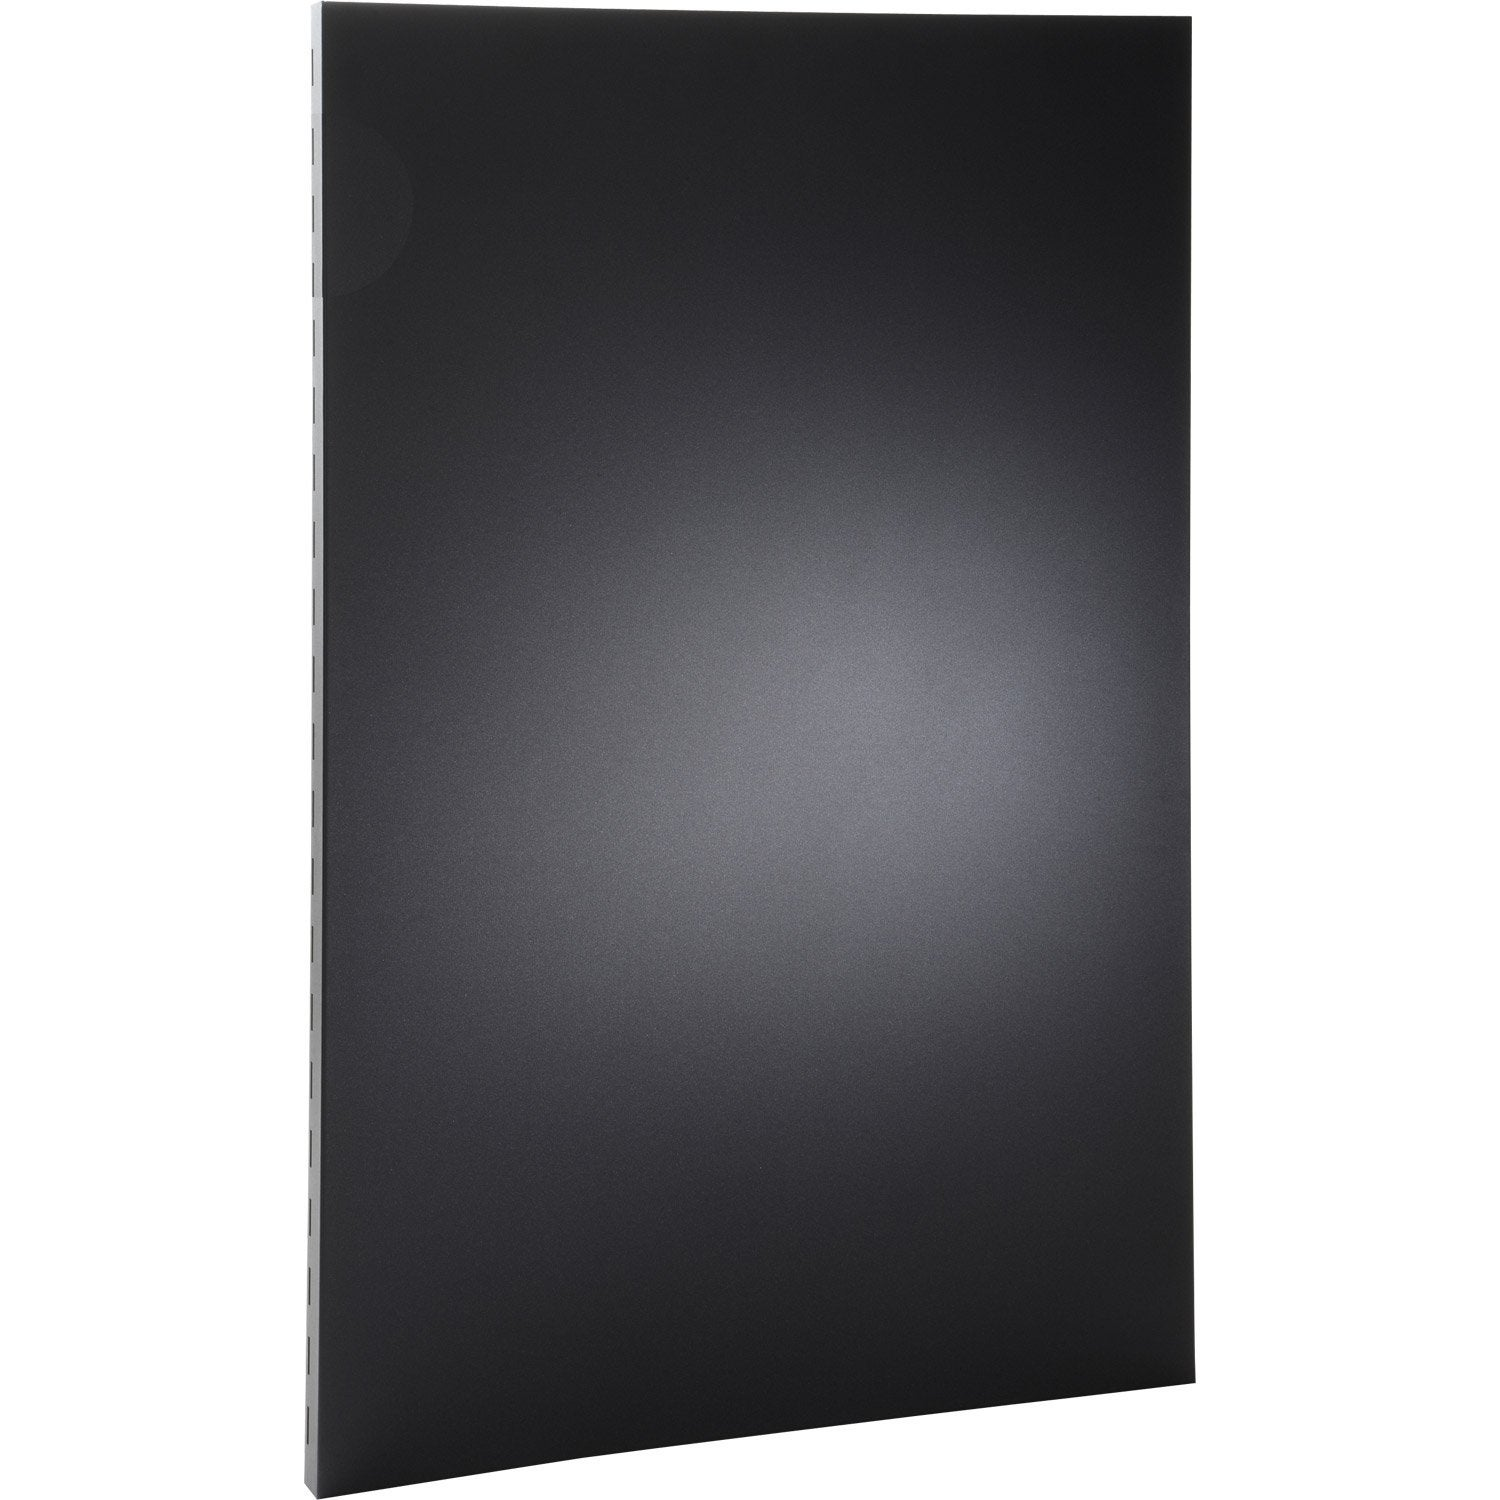 Plaque de protection murale acier equation discr tion noir for Protection murale plaque de cuisson